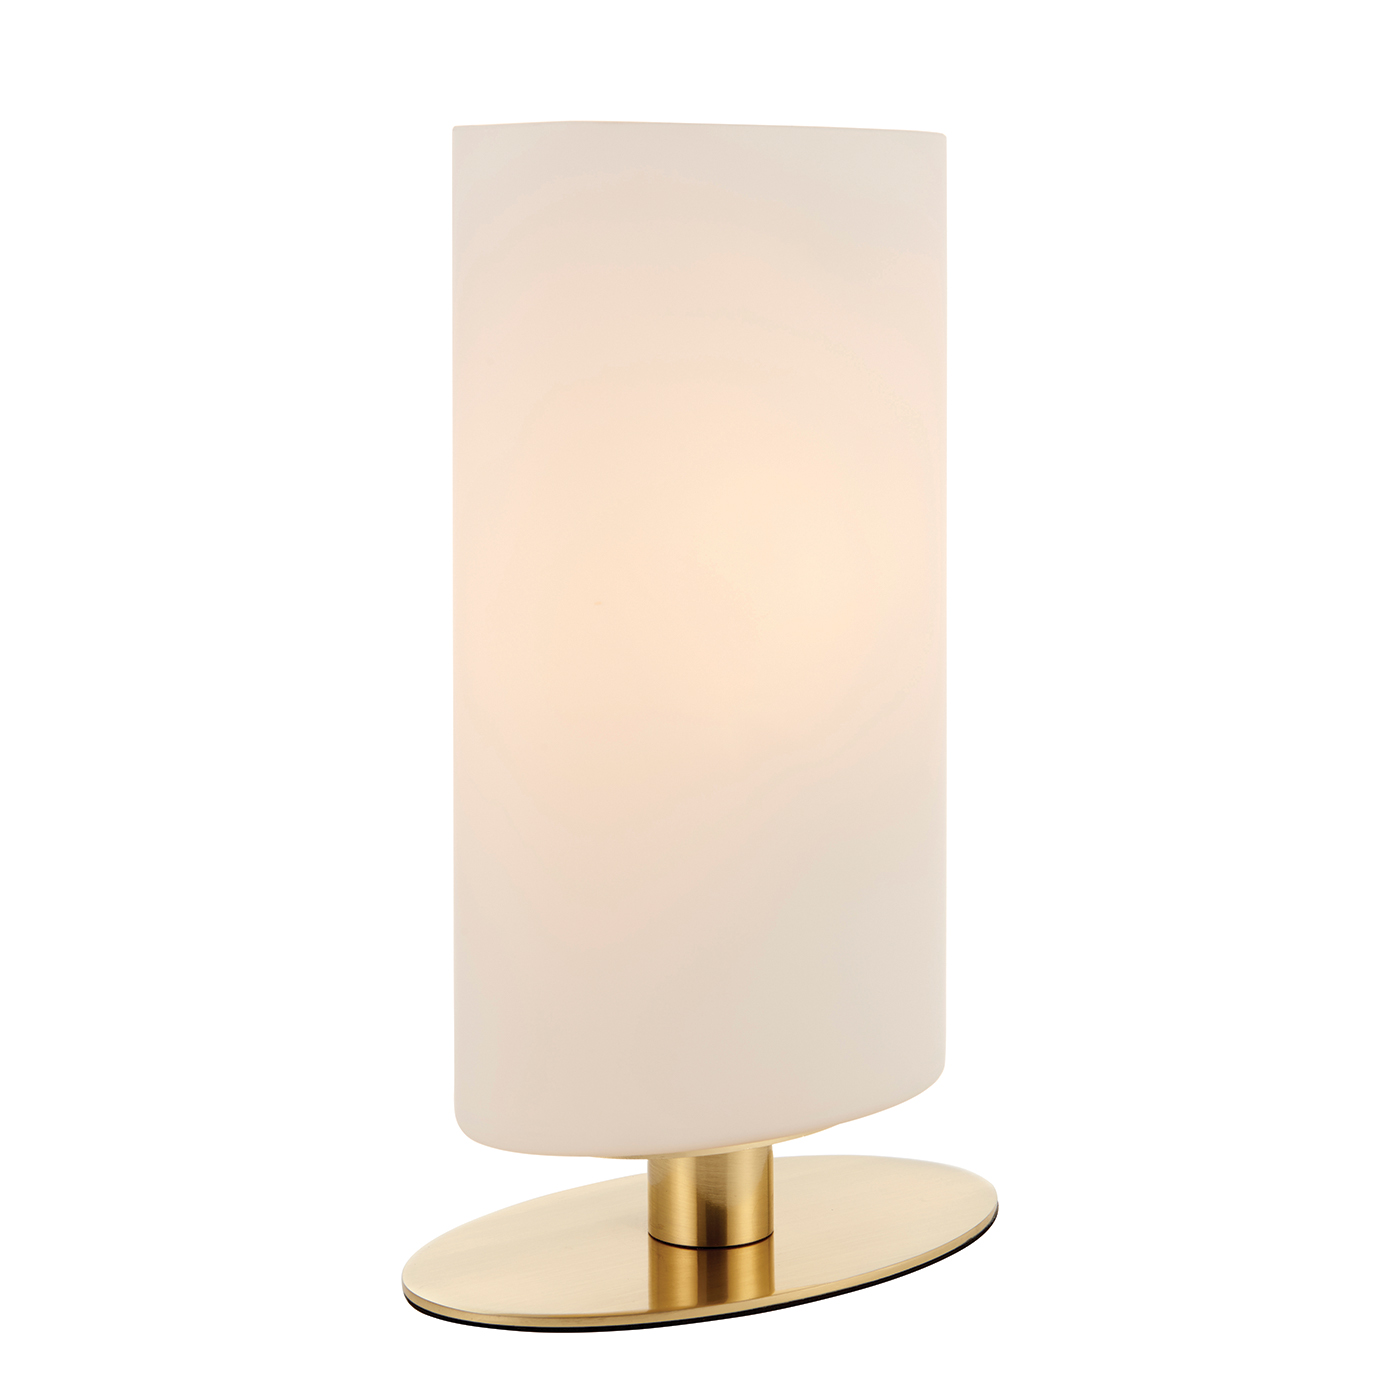 Endon 68846 Palmer Table Lamp 40W Gold